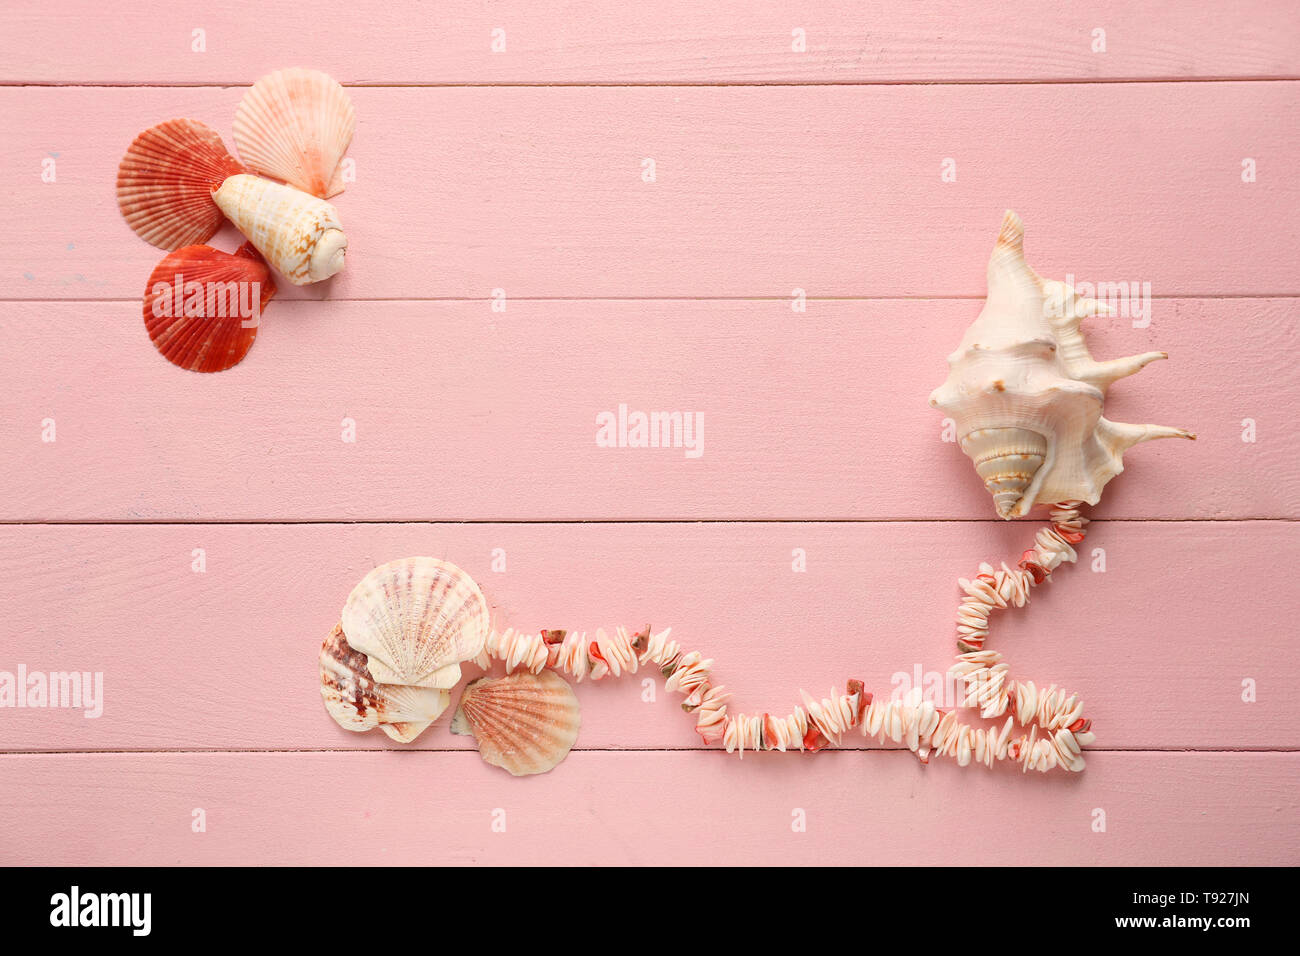 Different sea shells with necklace on color wooden background - Stock Image